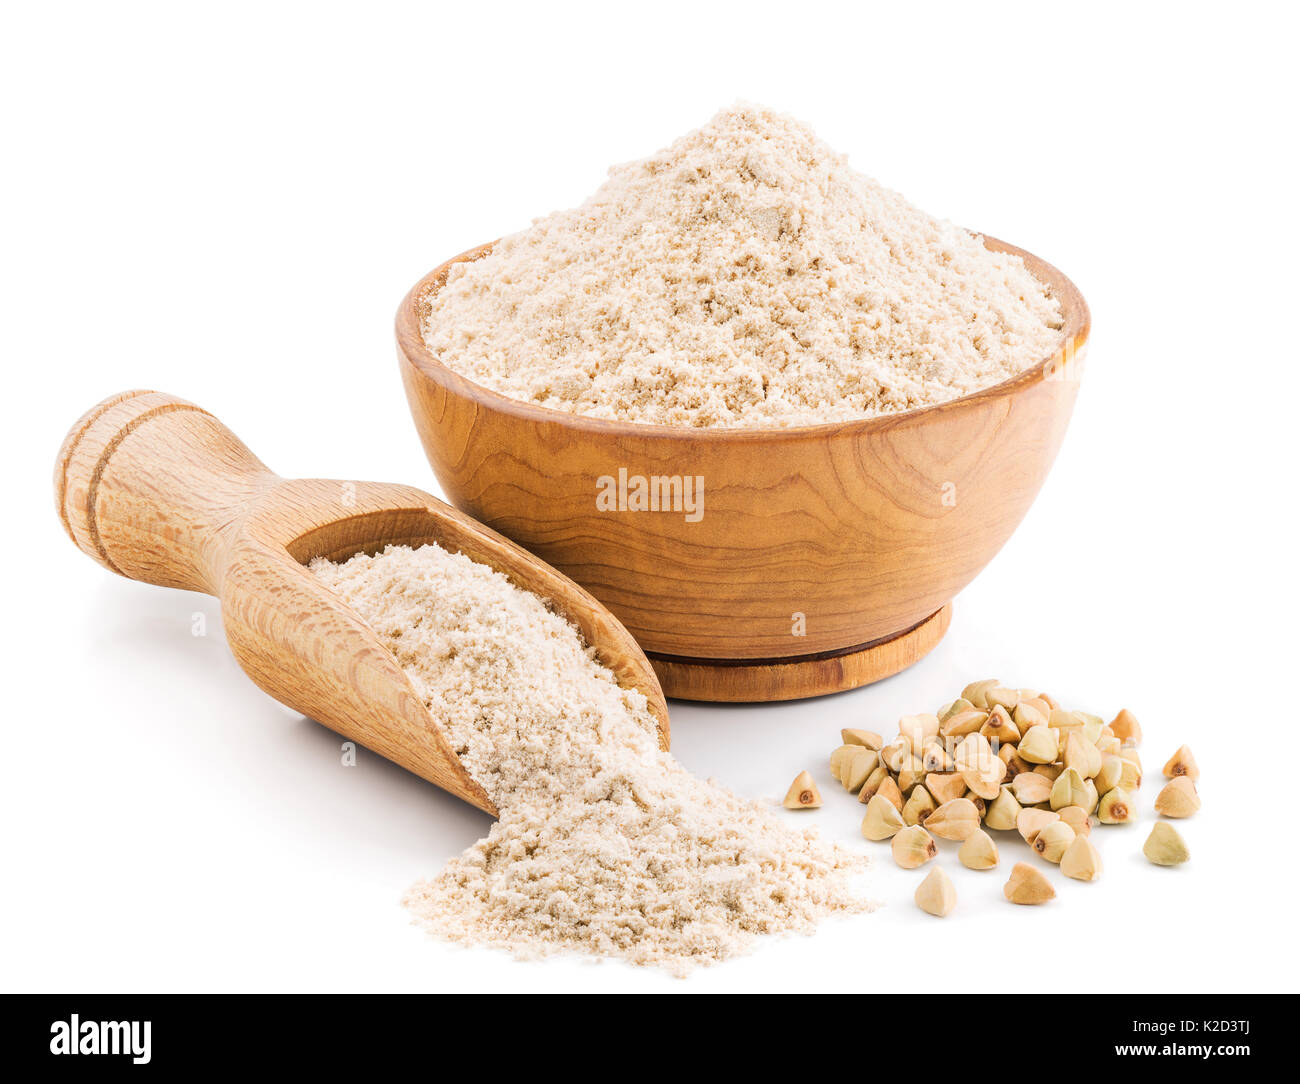 Whole grain buckwheat flour isolated on white Stock Photo